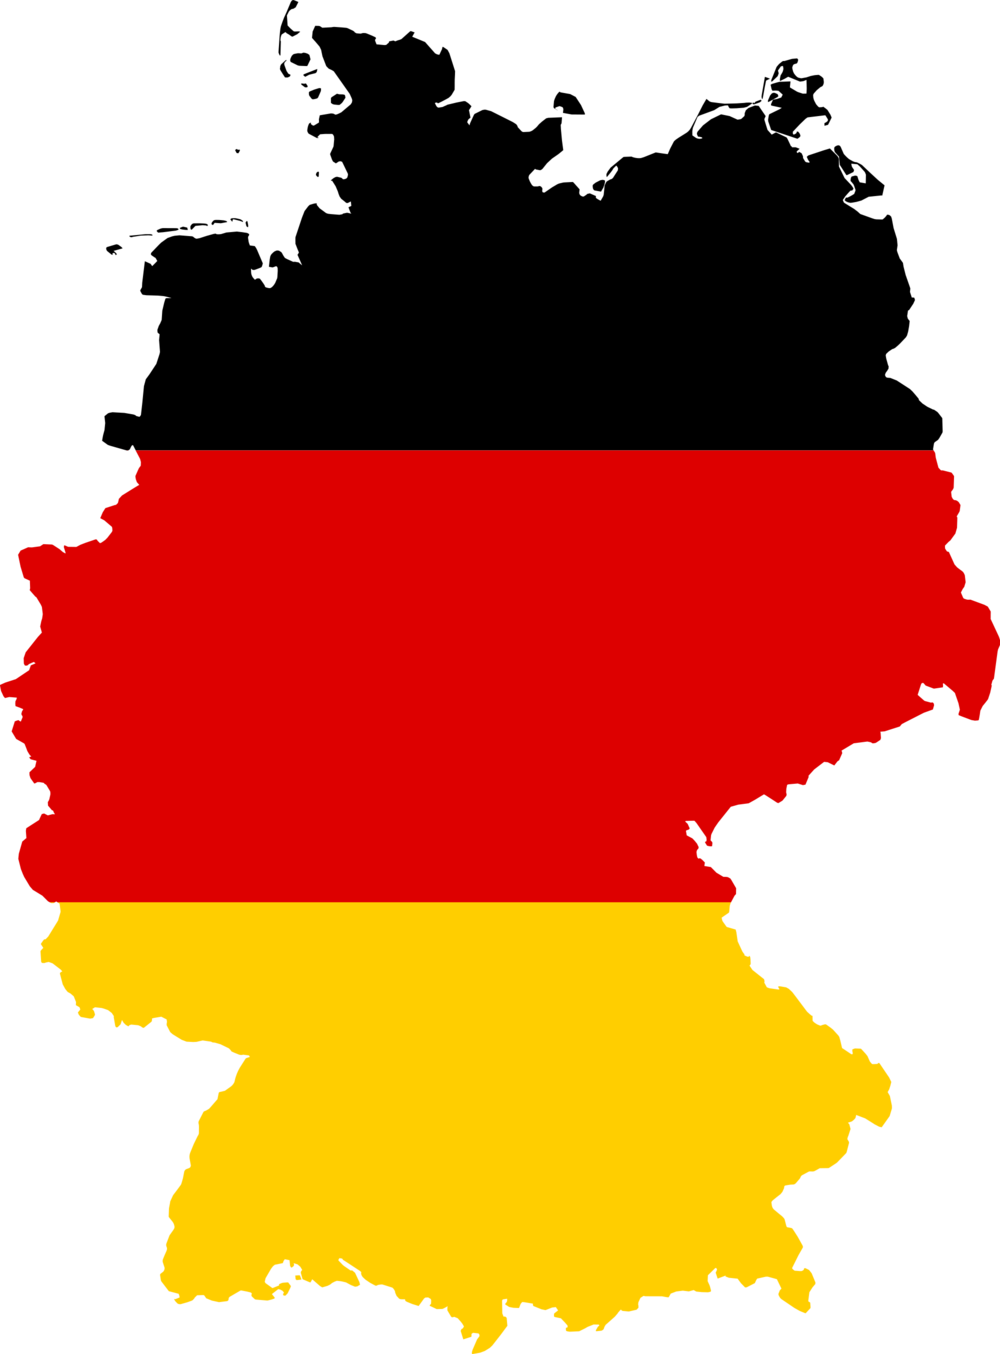 Germany: The Richards Family